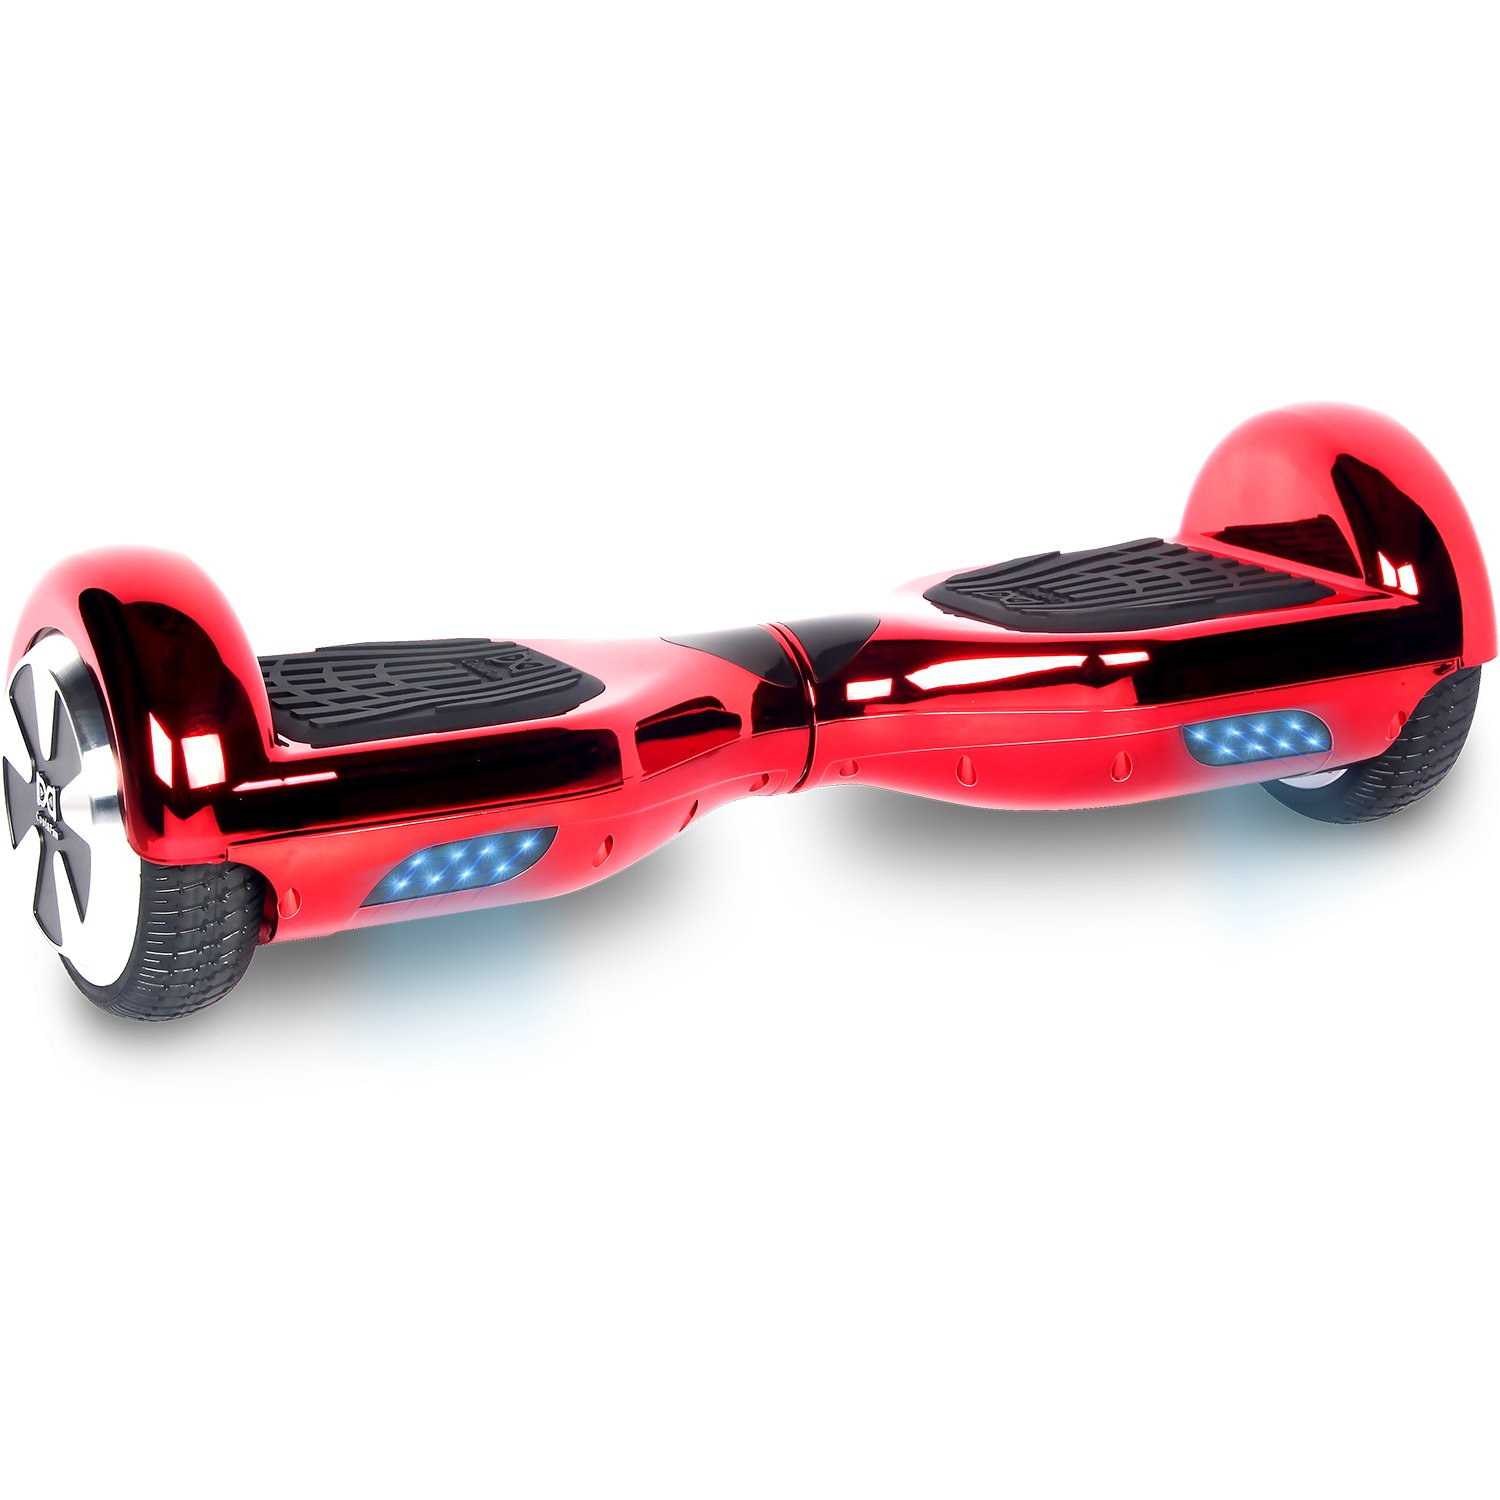 Cool Fun Hoverboard Patinete Eléctrico Scooter talla  de Shop Gyrogeek Rojo